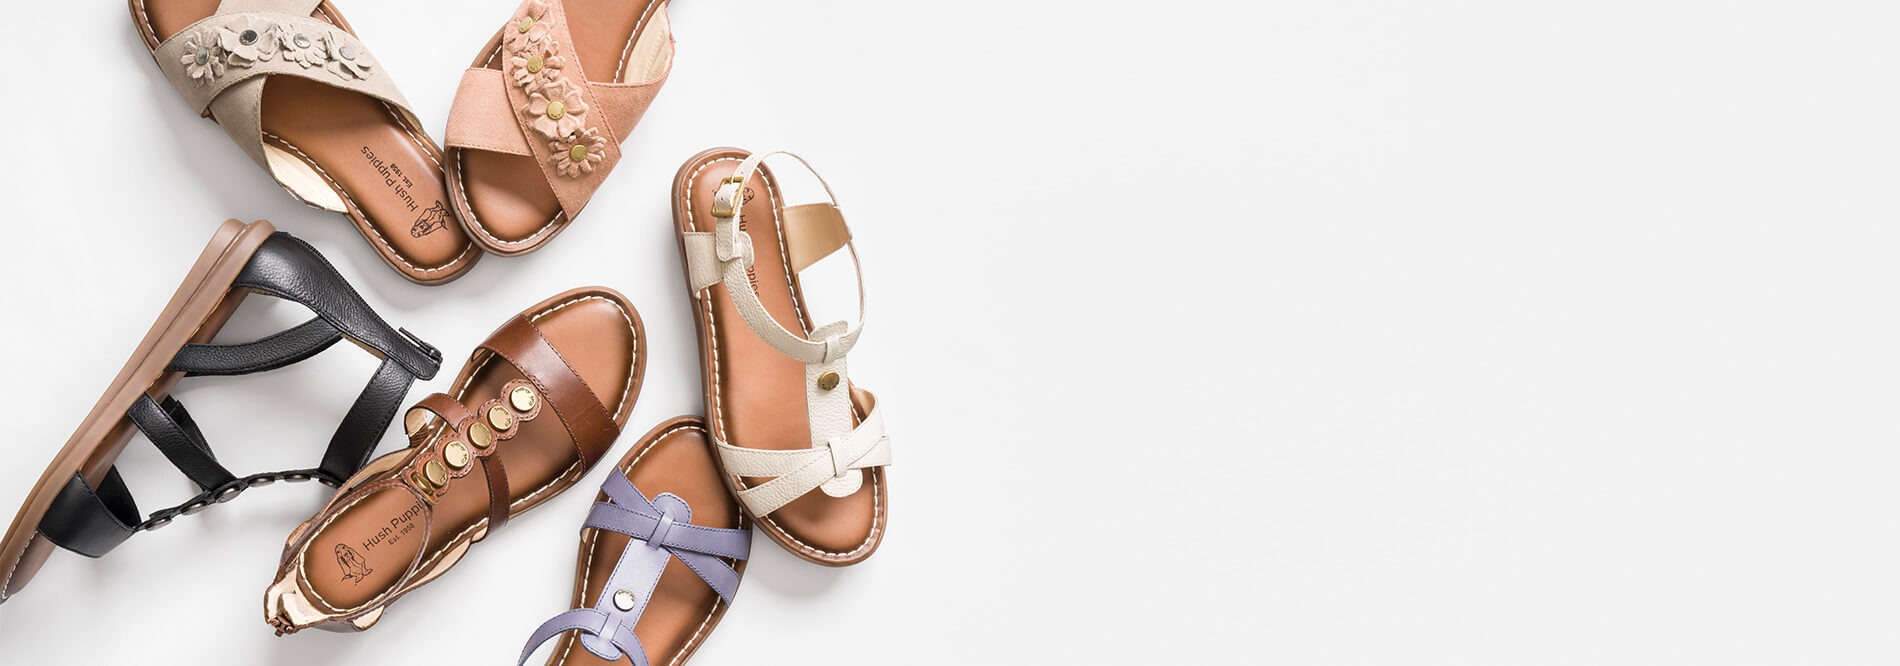 1b0a10536a32 Hush Puppies. Summer is too short to spend it breaking in sandals.